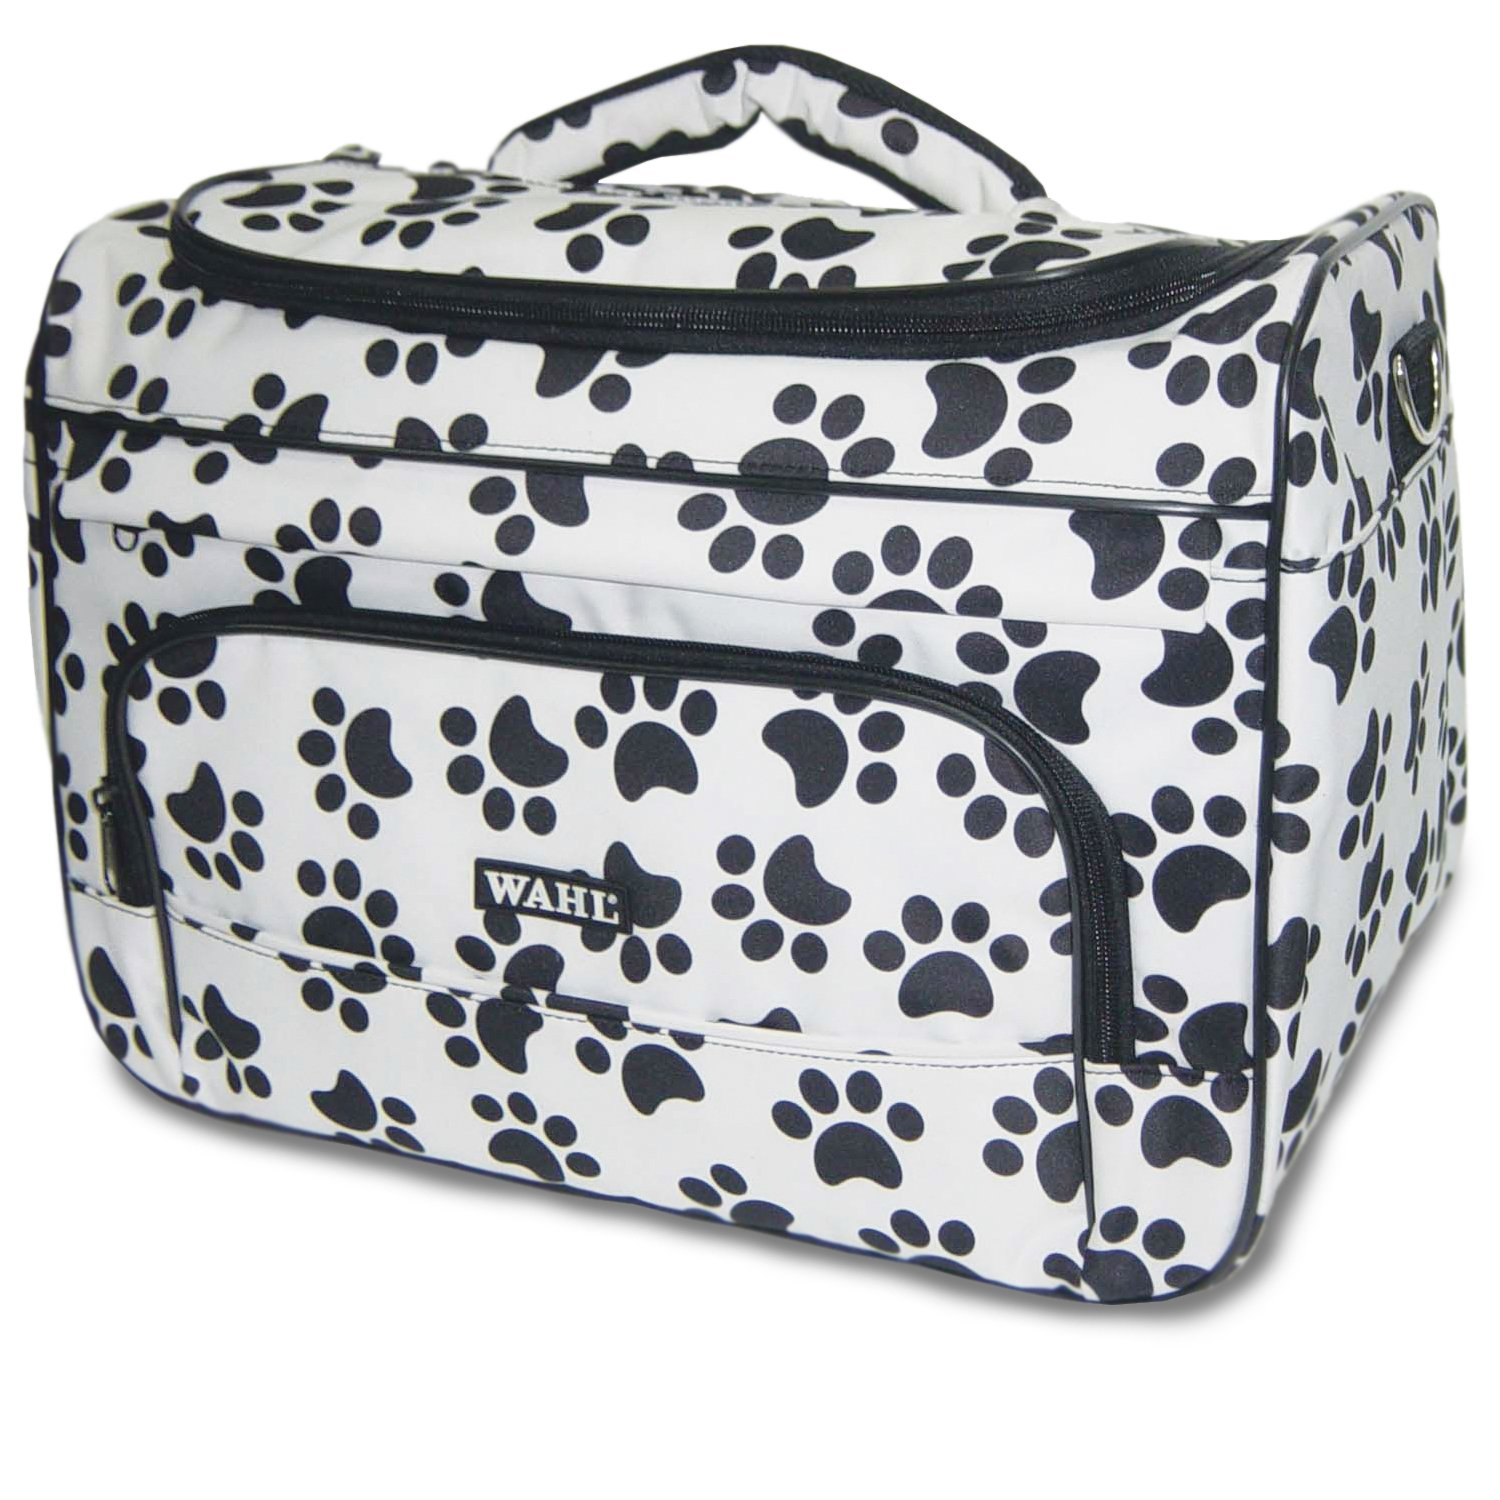 Black and White Paw Print Zippered Pet Travel Bag Wahl Professional Animal Paw Print Travel Tote Bag Black and White  97764-001